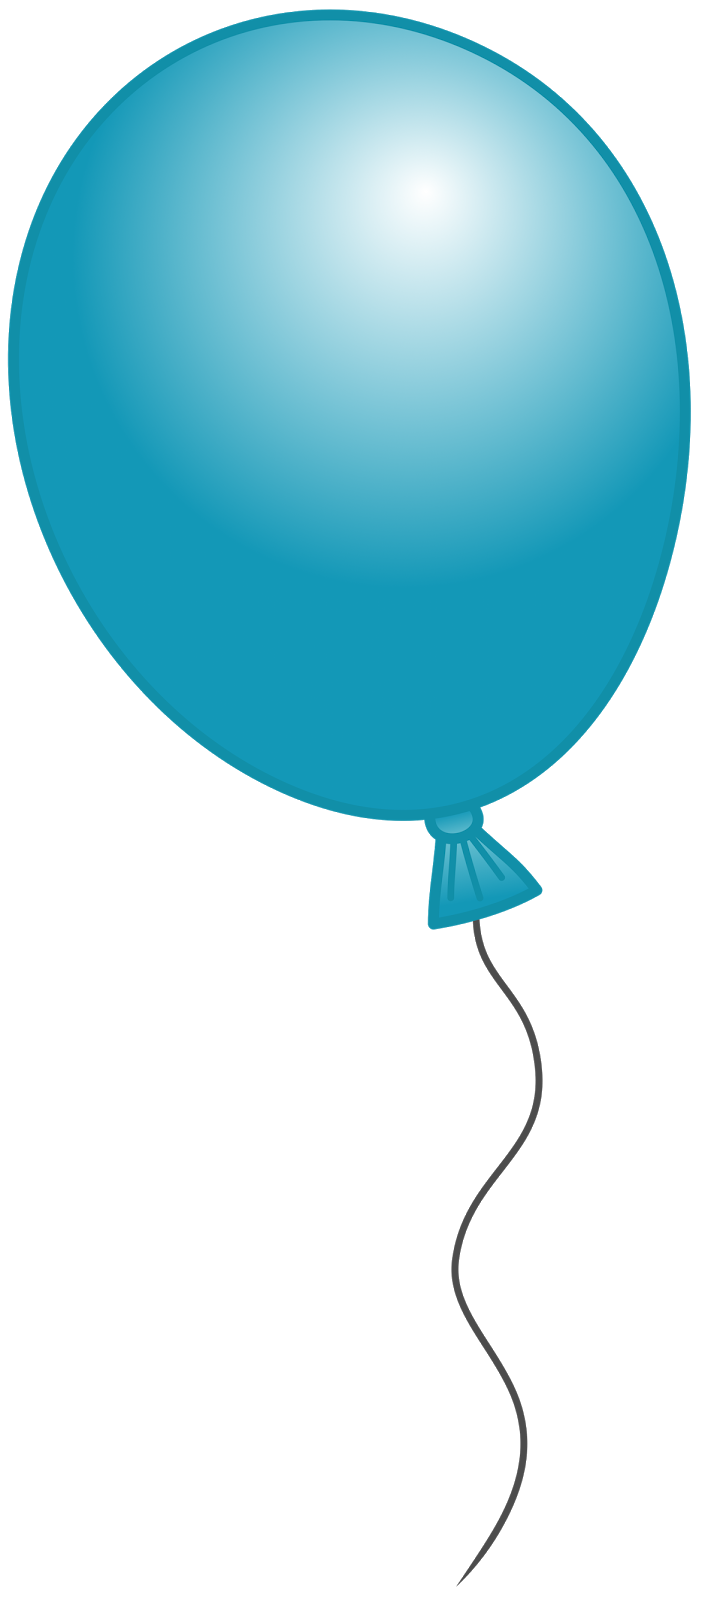 Balloon clipart. Blue